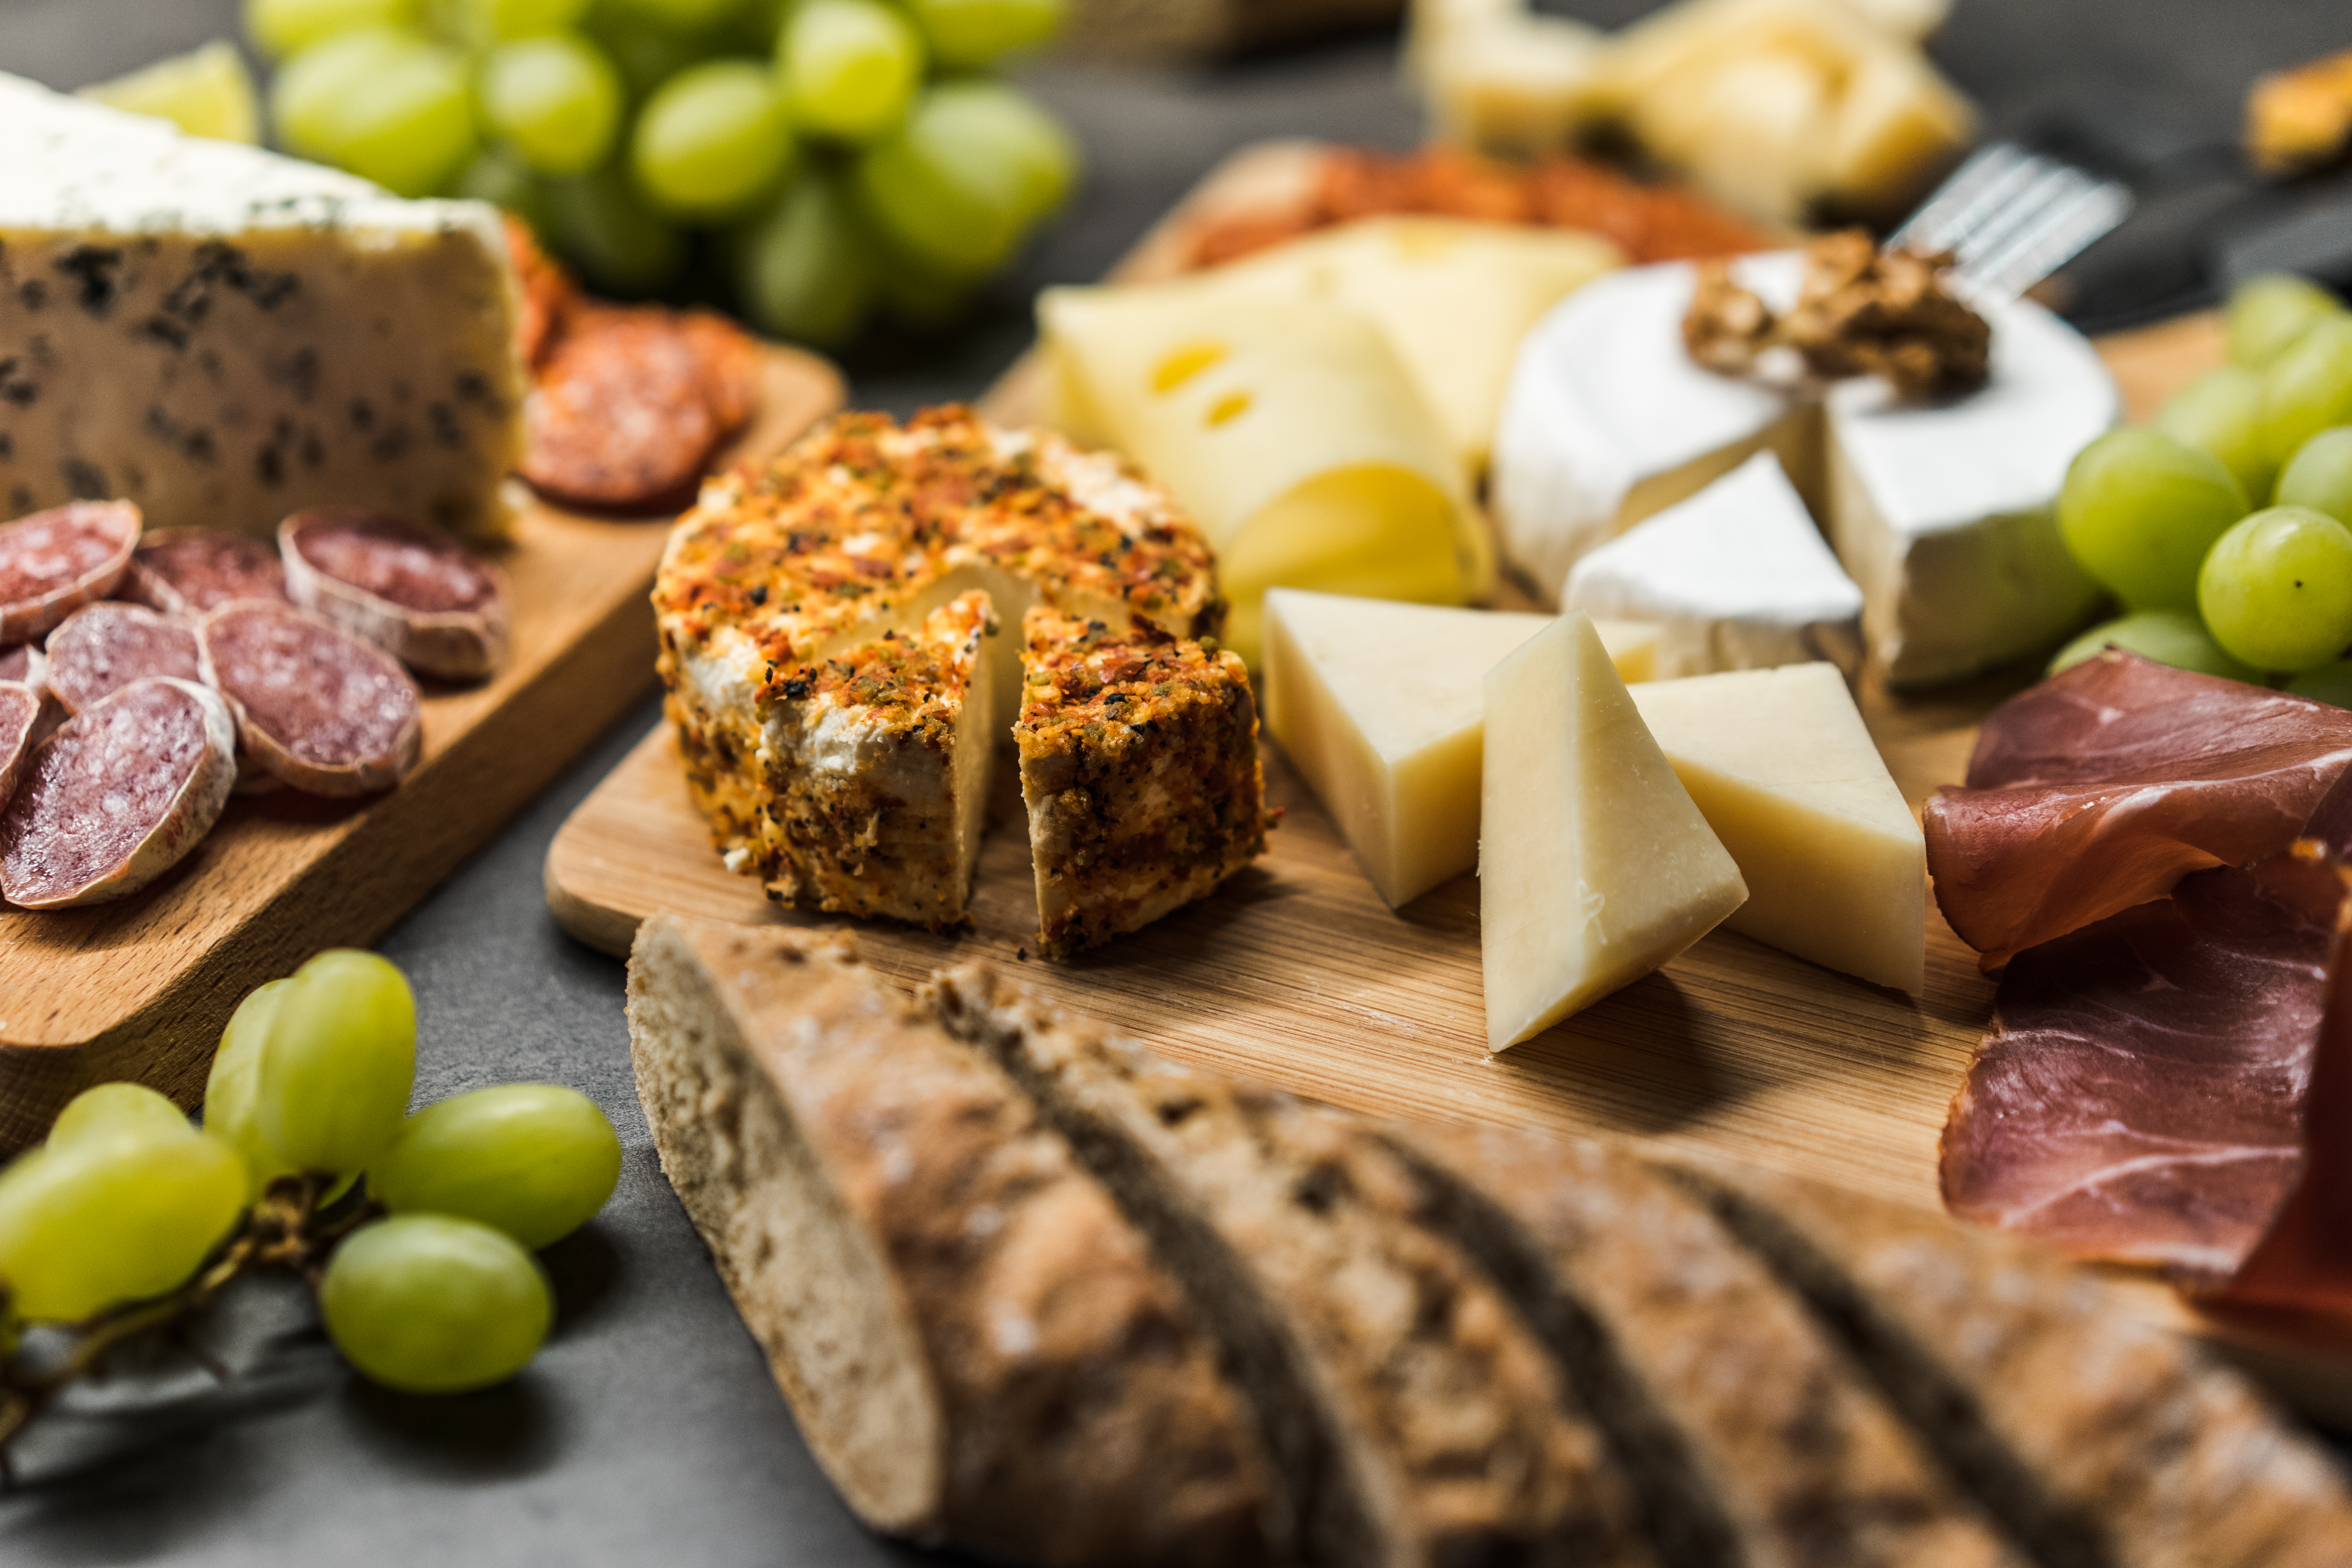 cheese-plate-close-up-picjumbo-com.jpg